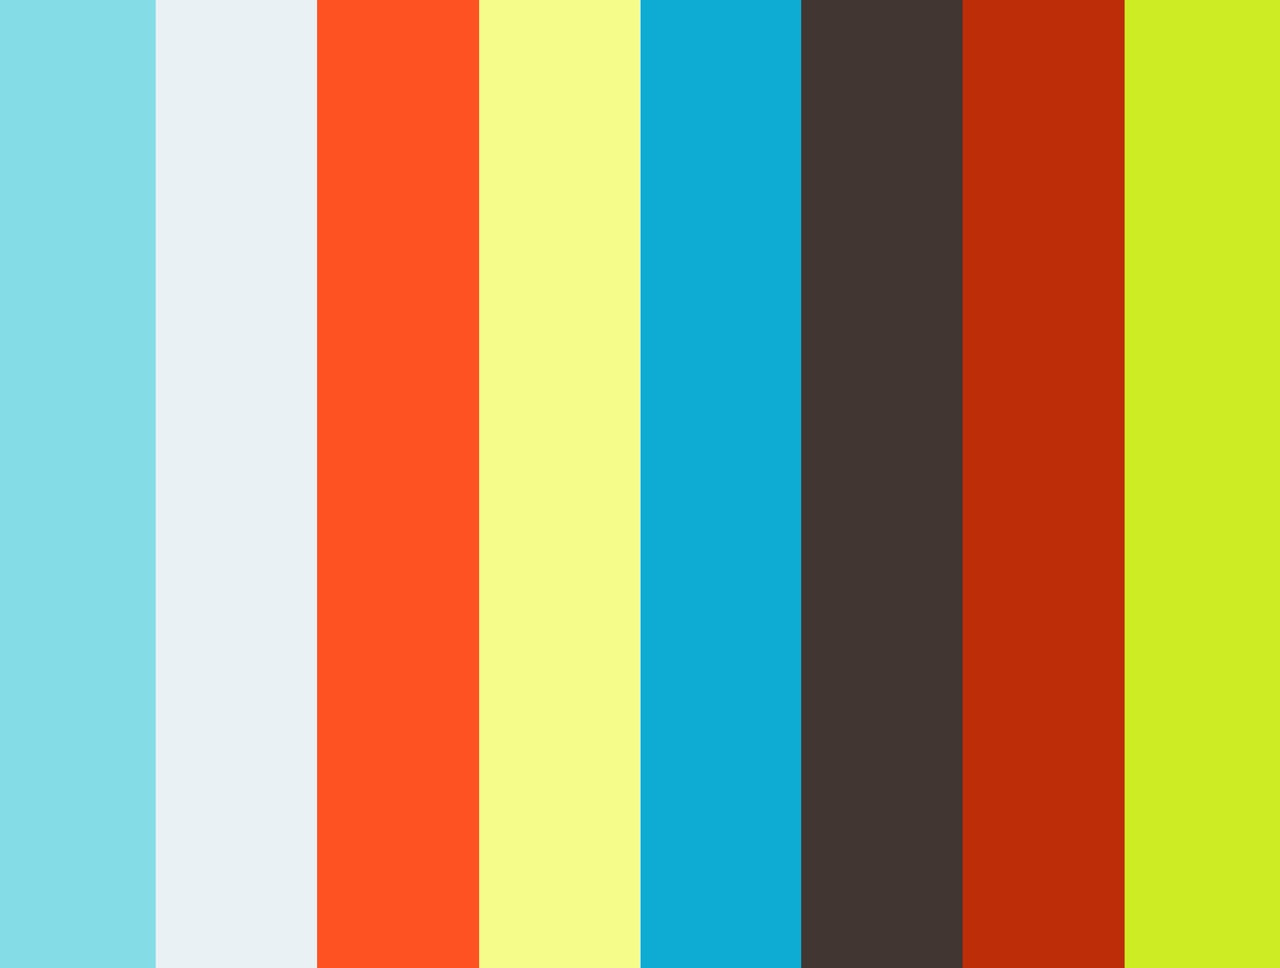 Gods Mercy and Grace | Crossroads Kauai | Josh Cucjen on Vimeo